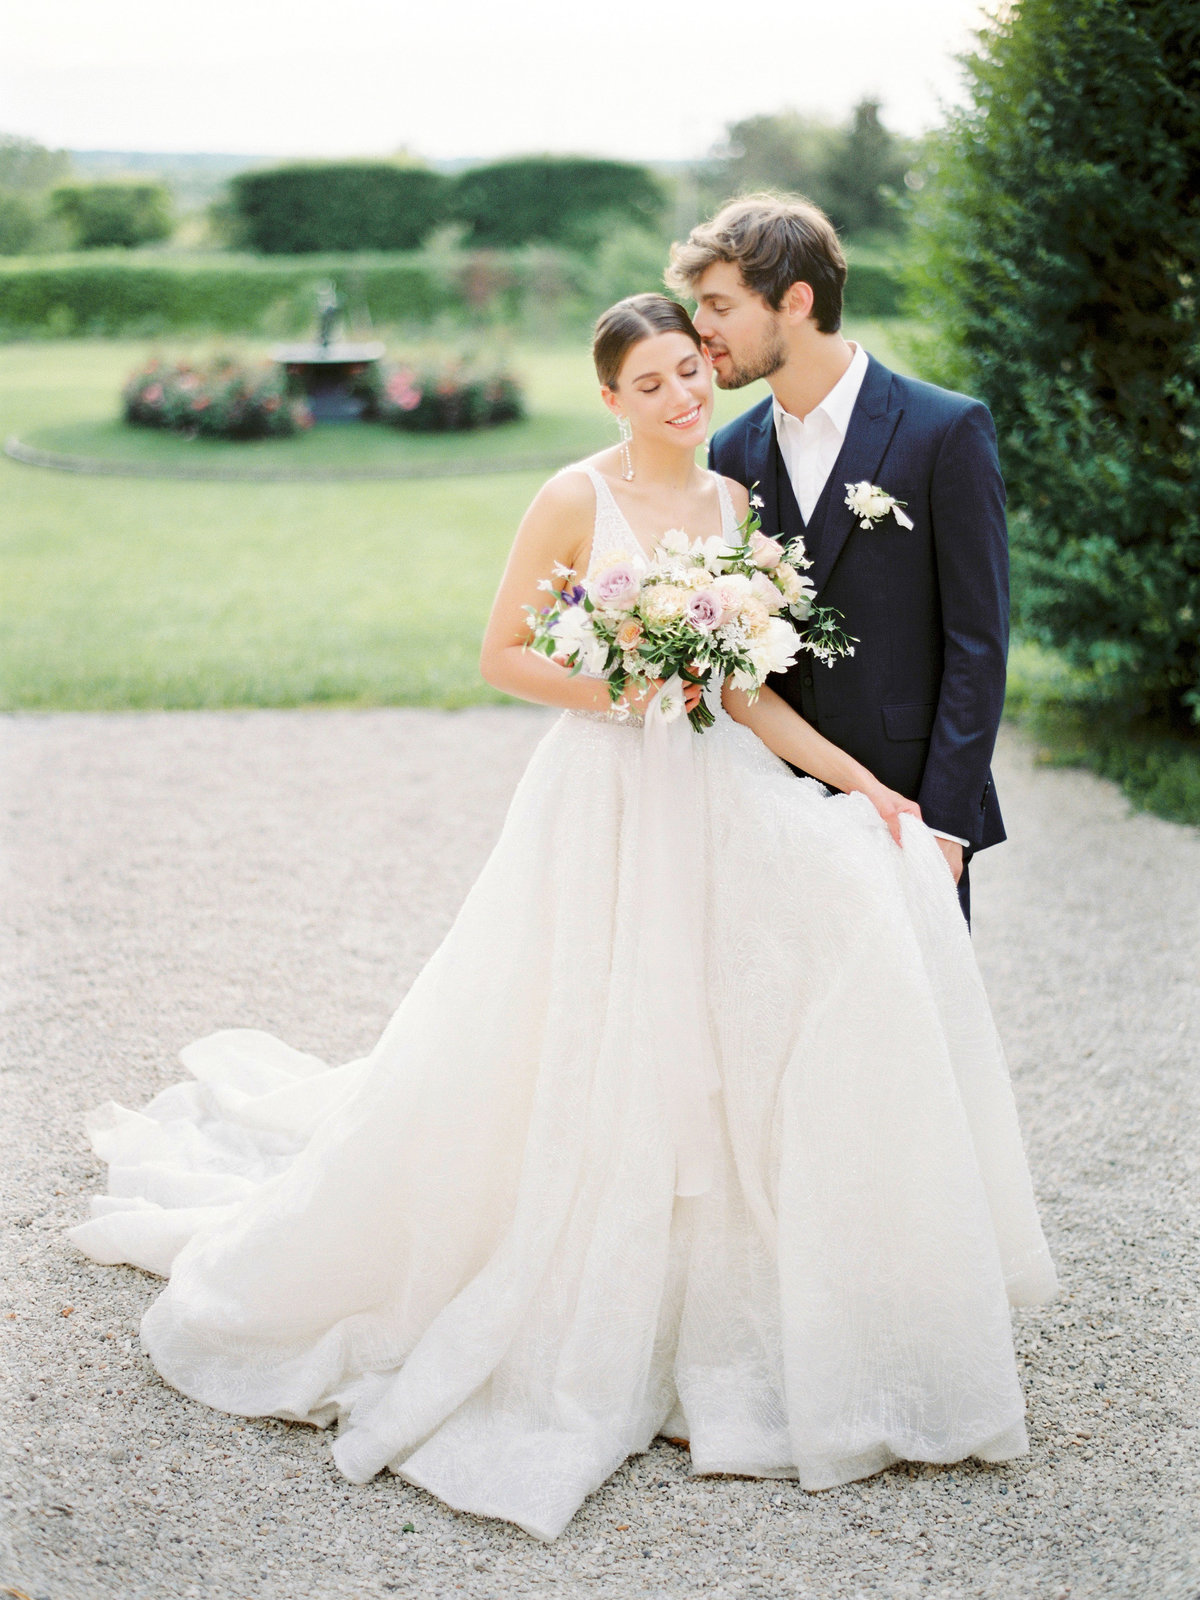 Luxurious french chateau wedding amelia soegijono0038